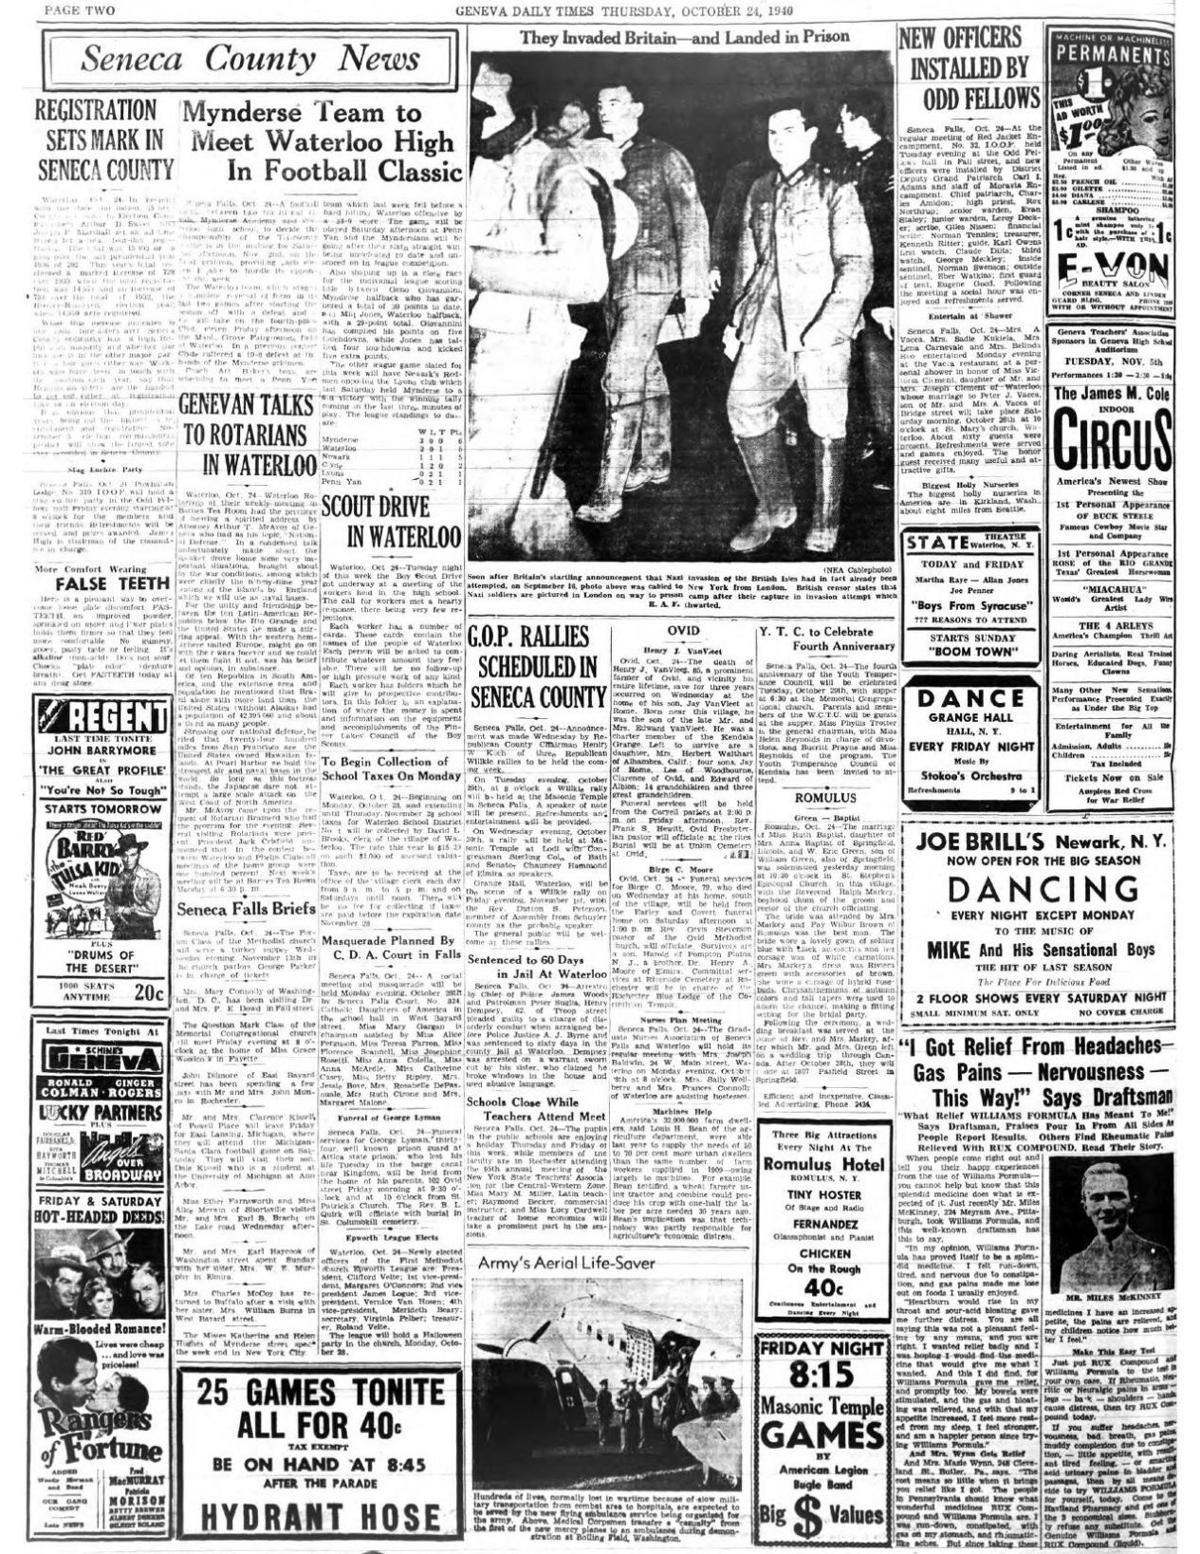 October 24, 1940 (page 2)